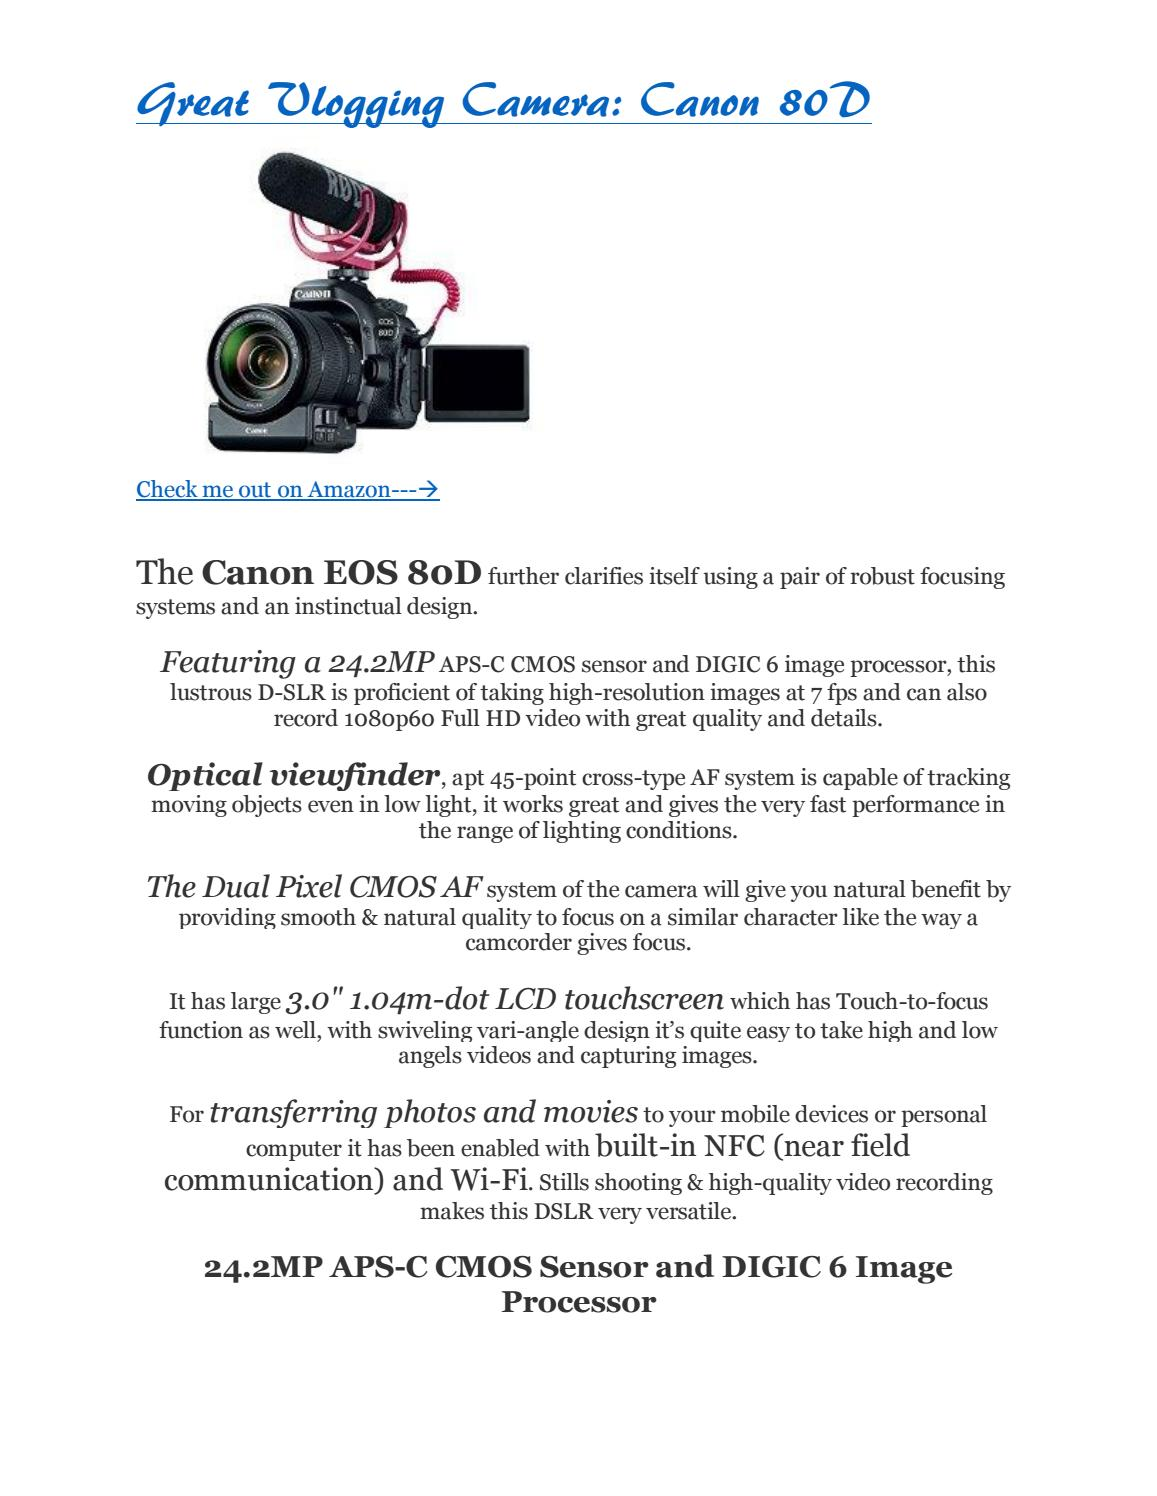 Great Vlogging Camera: Canon 80D by vintoewenzachari - issuu